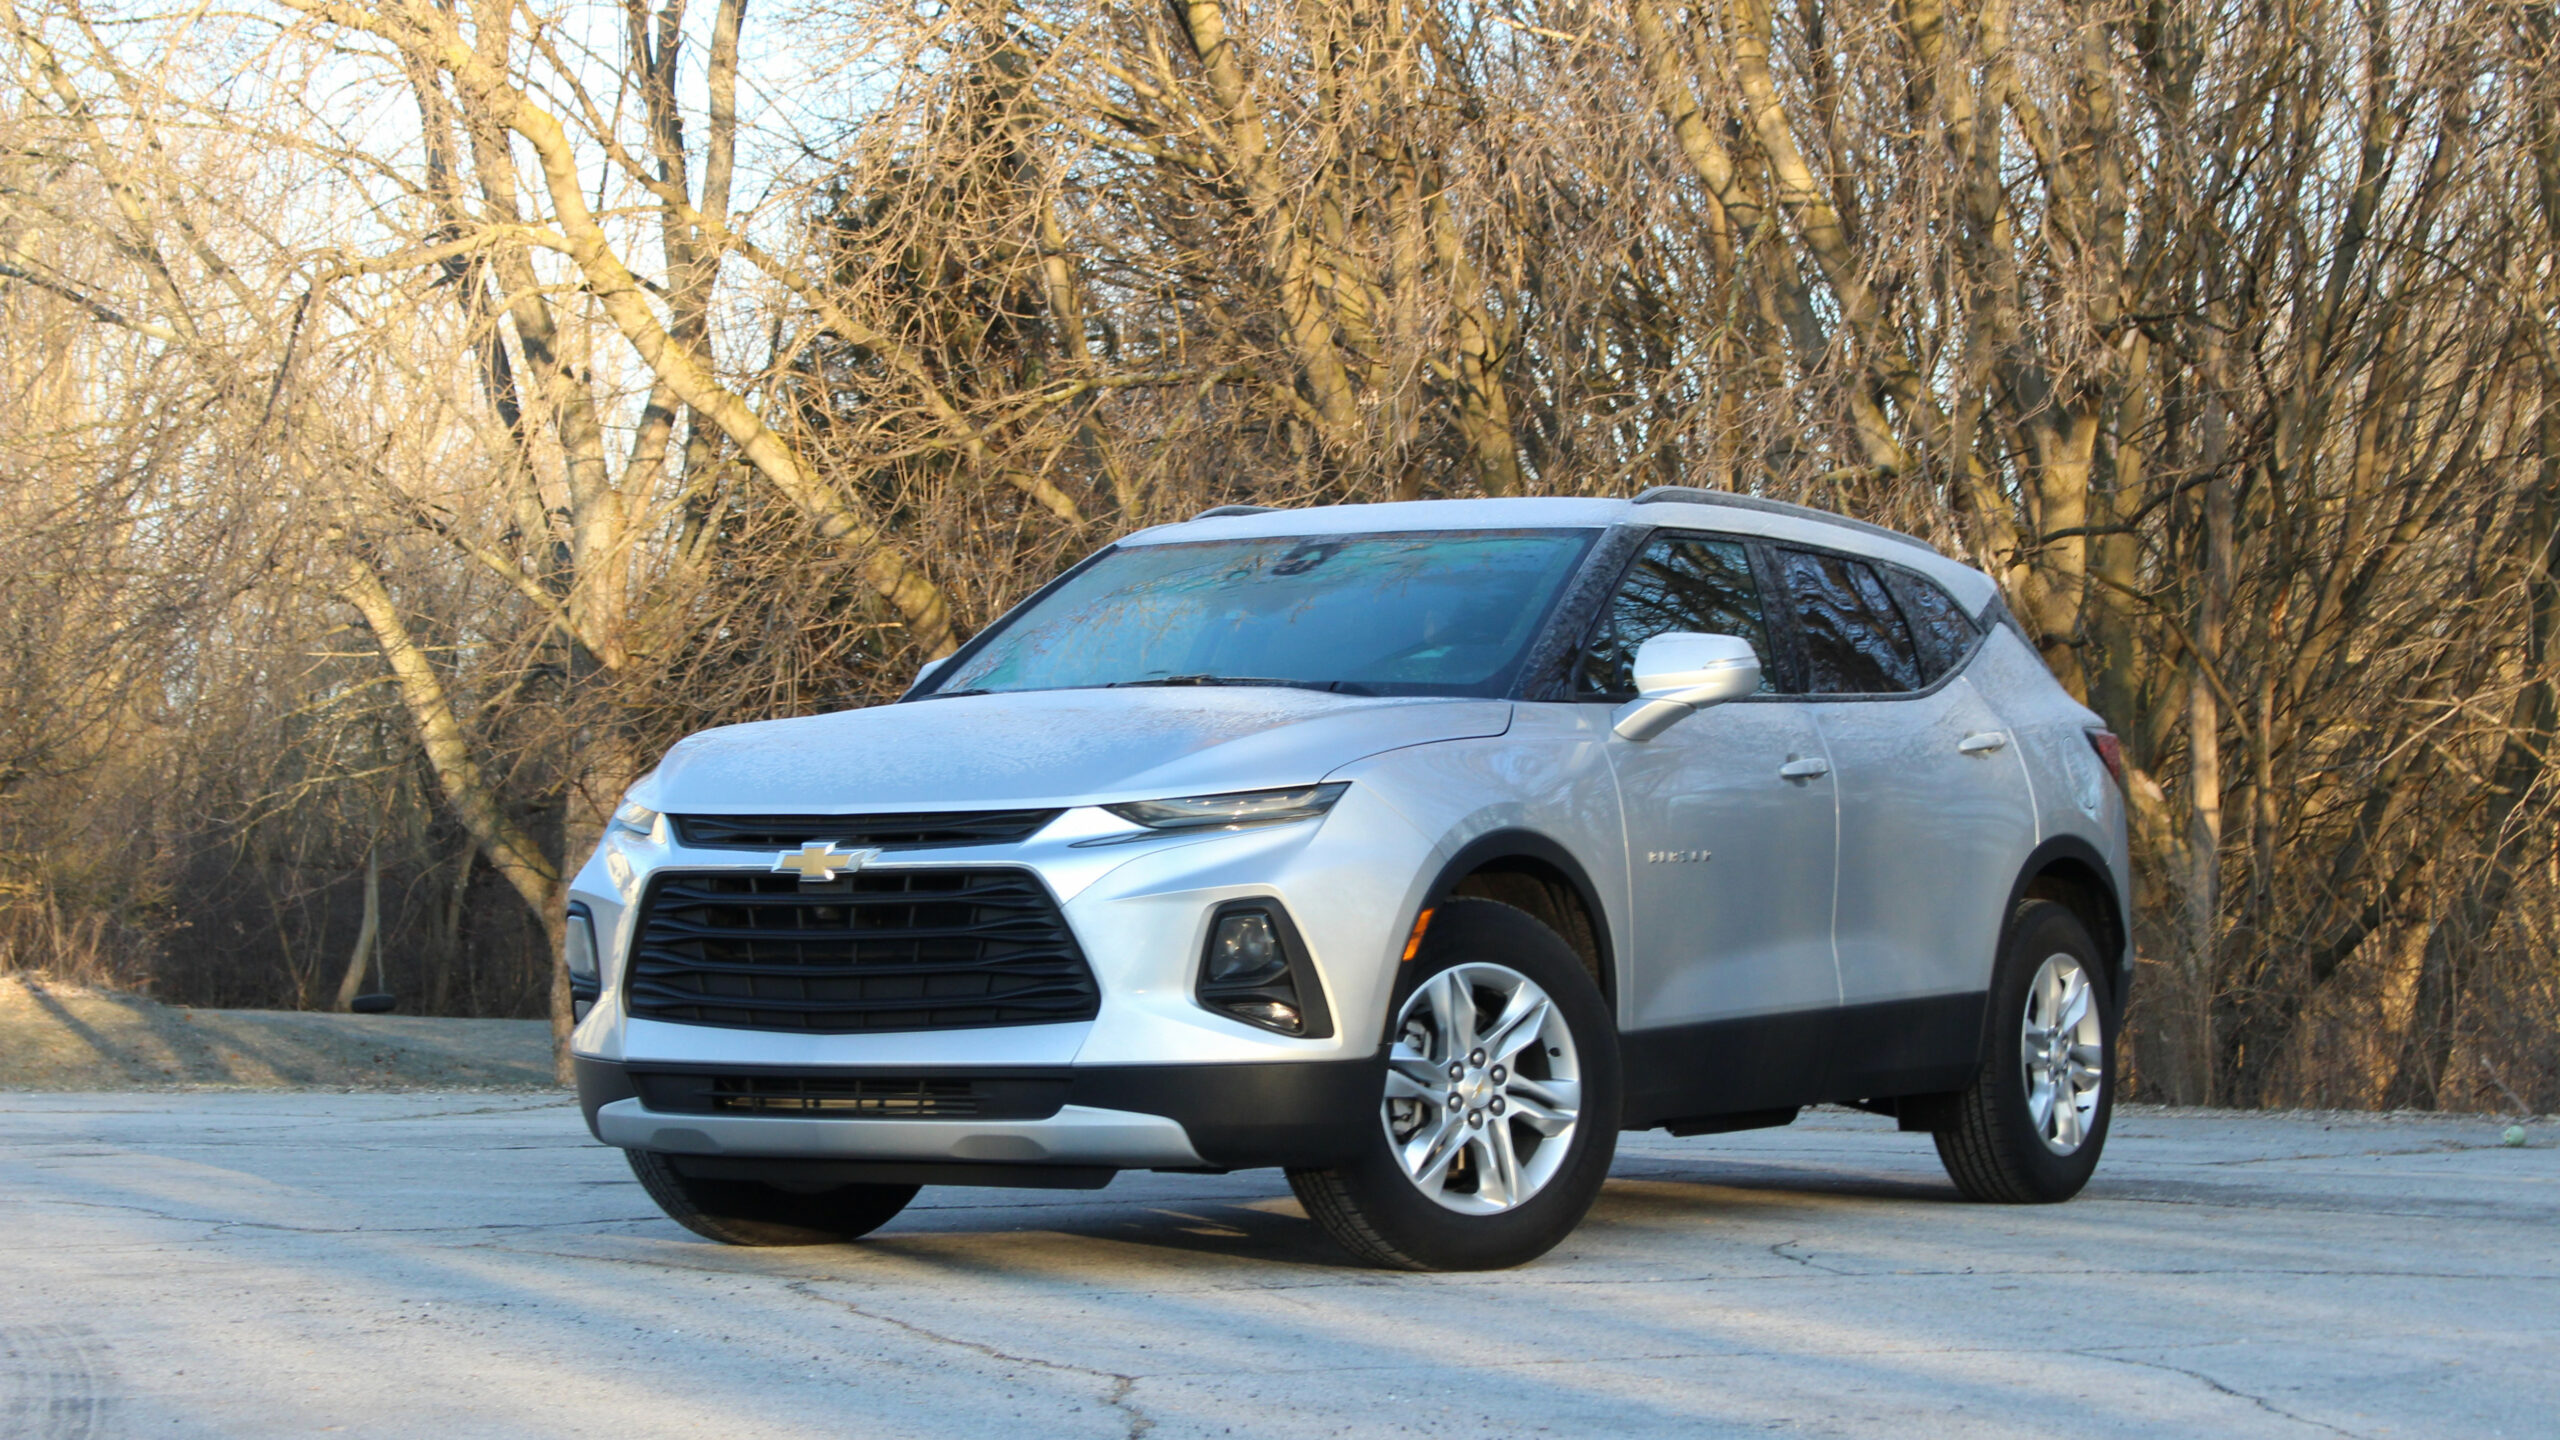 Pictures Chevrolet Blazer 2022